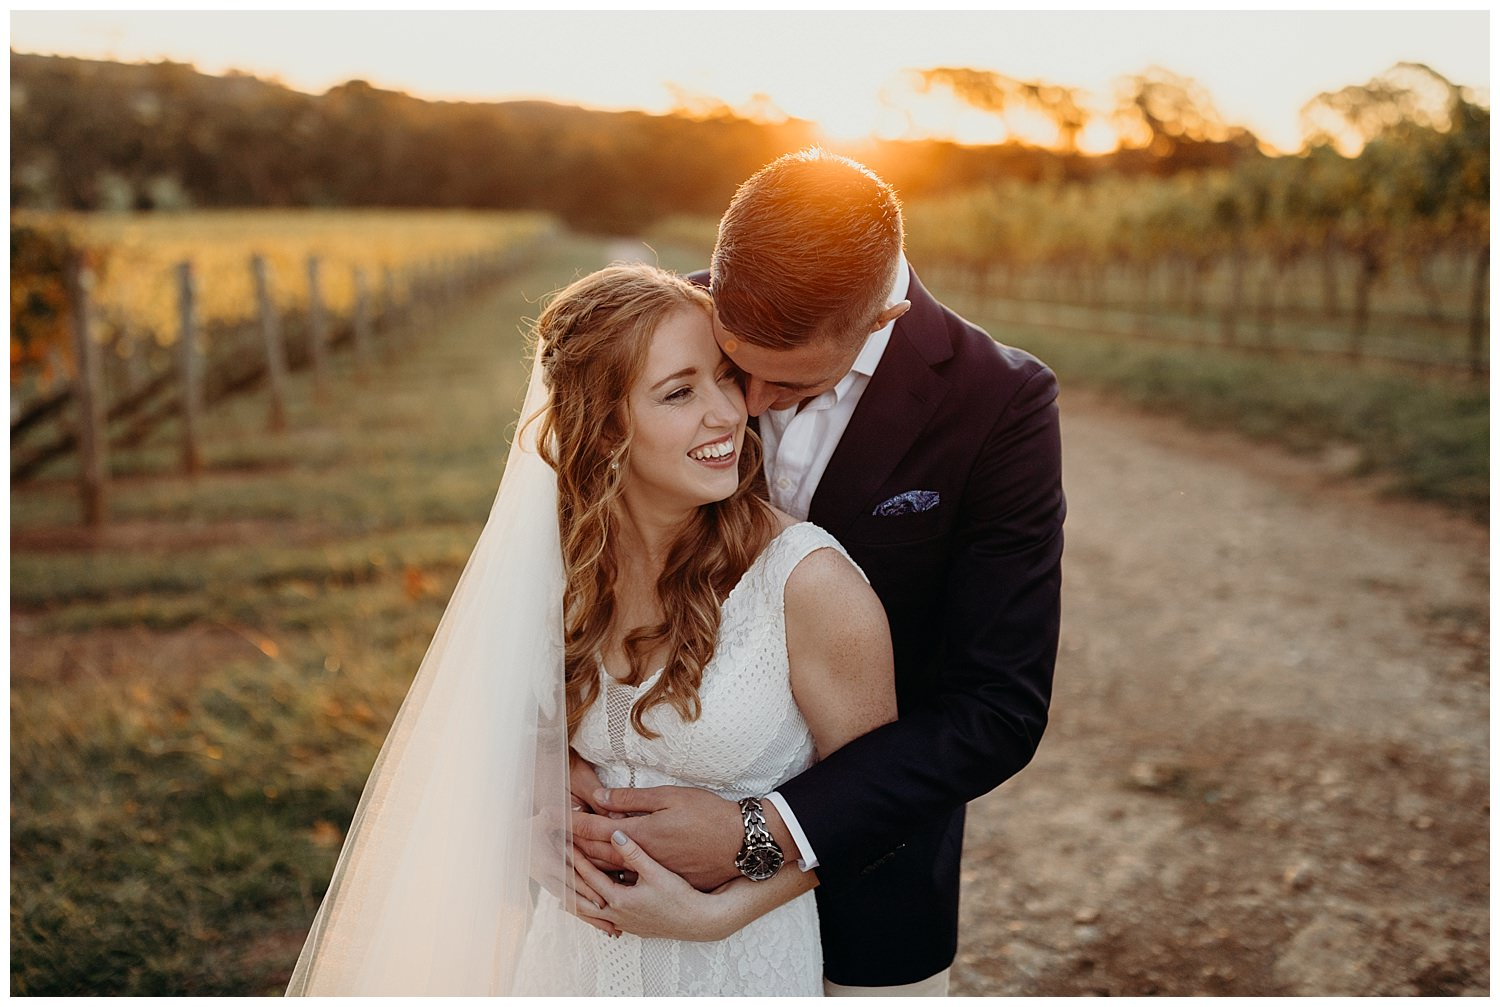 Bowral Southern Highlands Autumn Wedding - Bride and groom at sunset